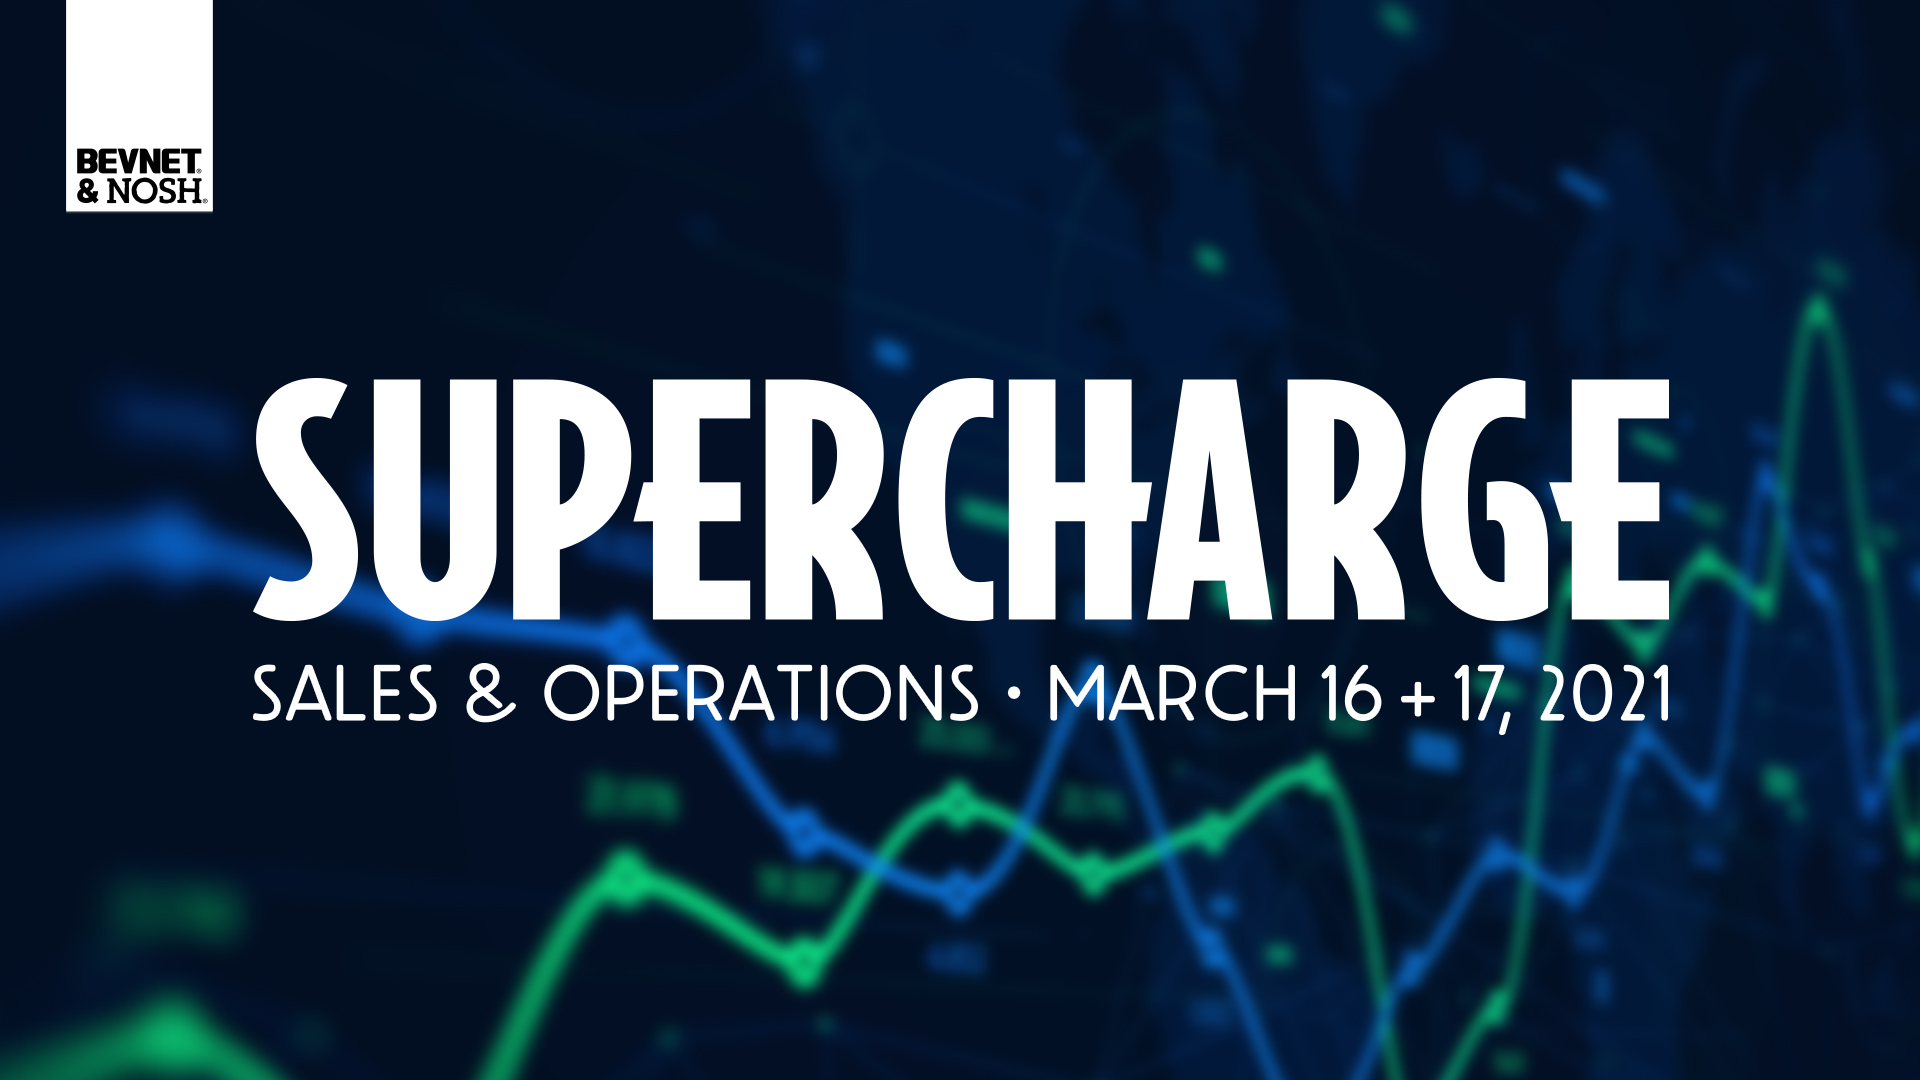 Supercharge: Sales & Operations